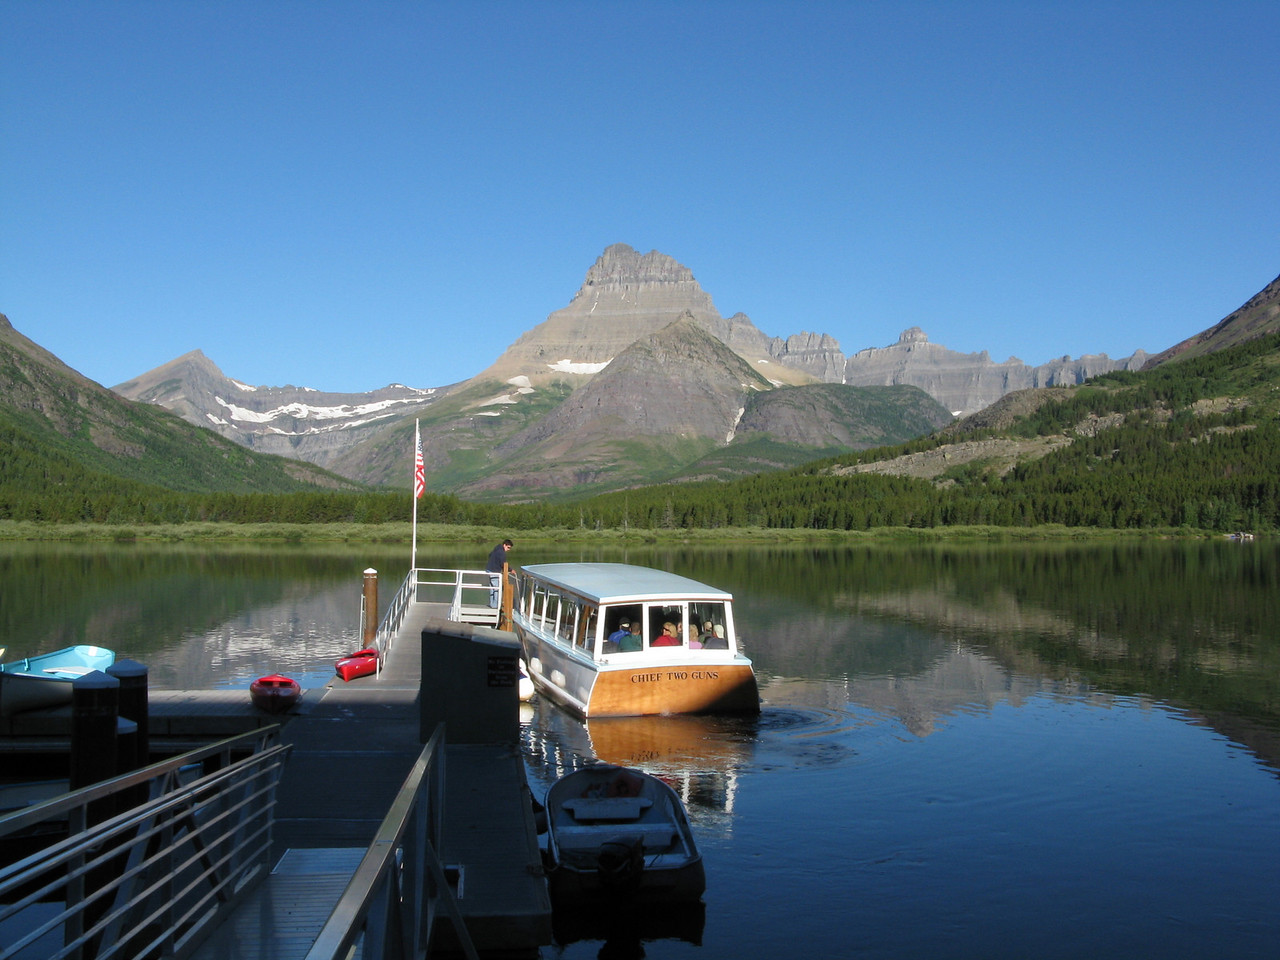 We arrived at the dock next to the Many Glacier Hotel in time to take the 8:30 a.m. boat.  The boat was full.  (The boat company had not returned my call for a reservation). So, we headed up the trail on foot.<br /> <br /> Looking west, this is Swiftcurrent Lake and Mount Wilbur in the distance.